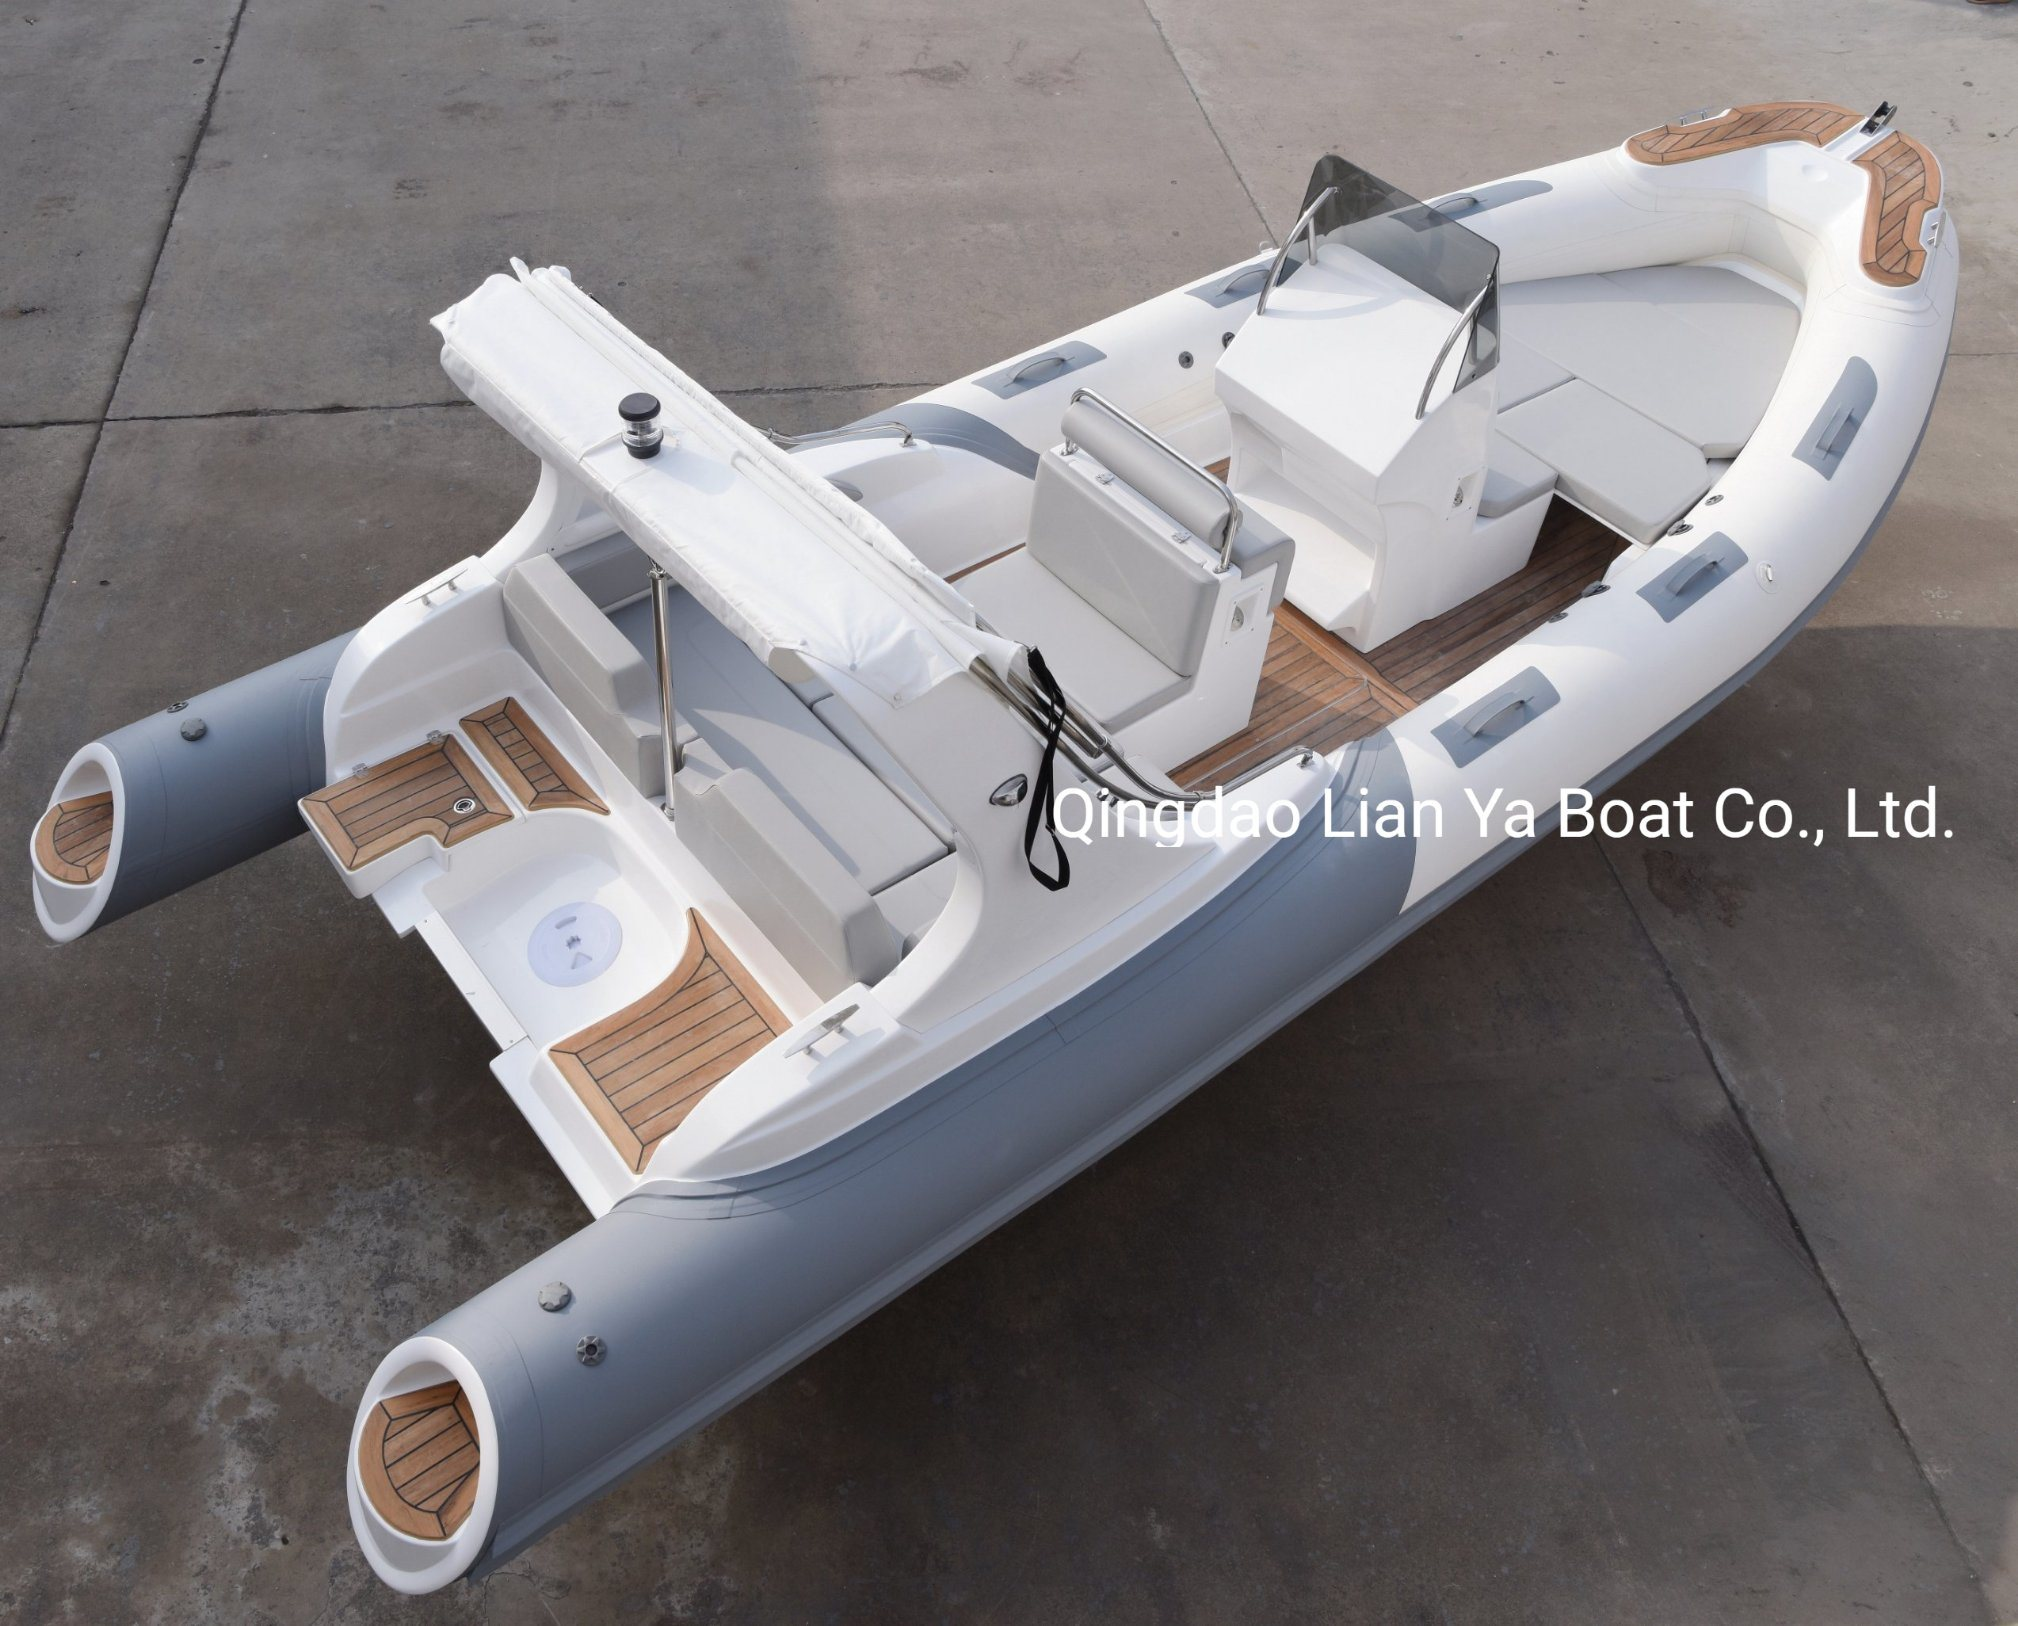 Liya 6.6meter/22feet Rib Boat Hypalon Large Inflatable Rigid Boat Ce